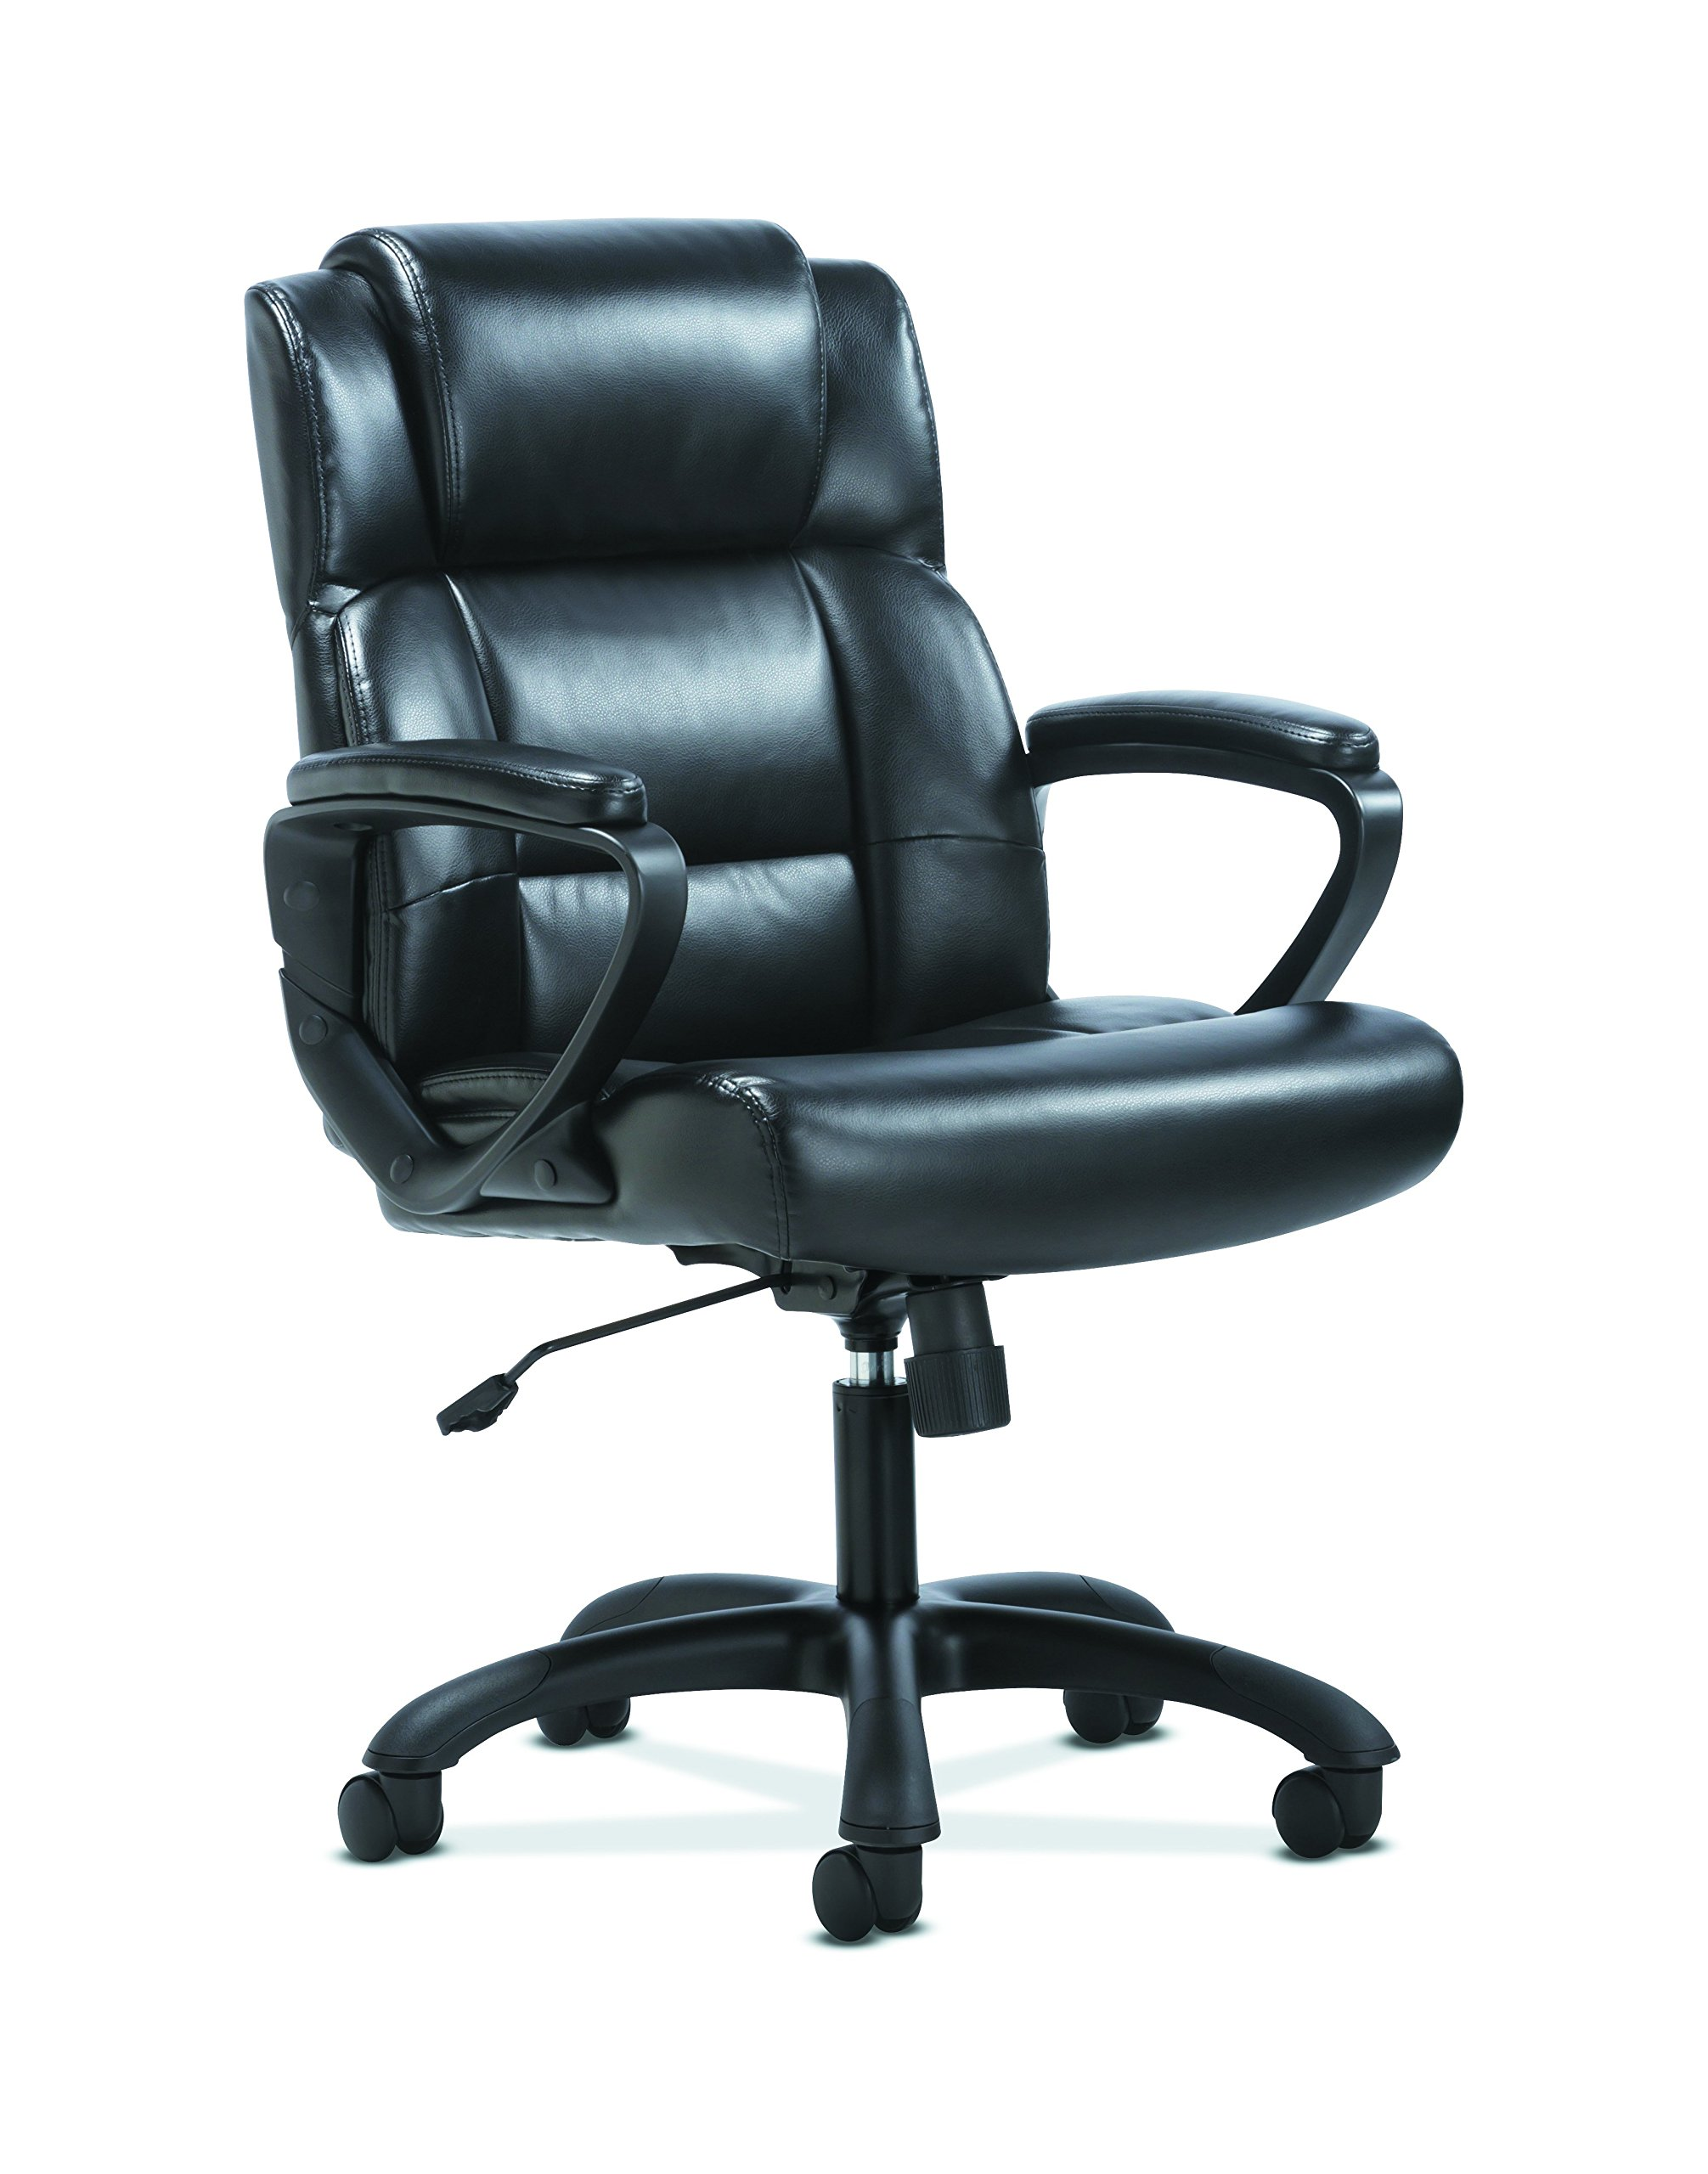 HON Sadie Leather Executive Computer/Office Chair with Arms - Ergonomic Swivel Chair (HVST305)